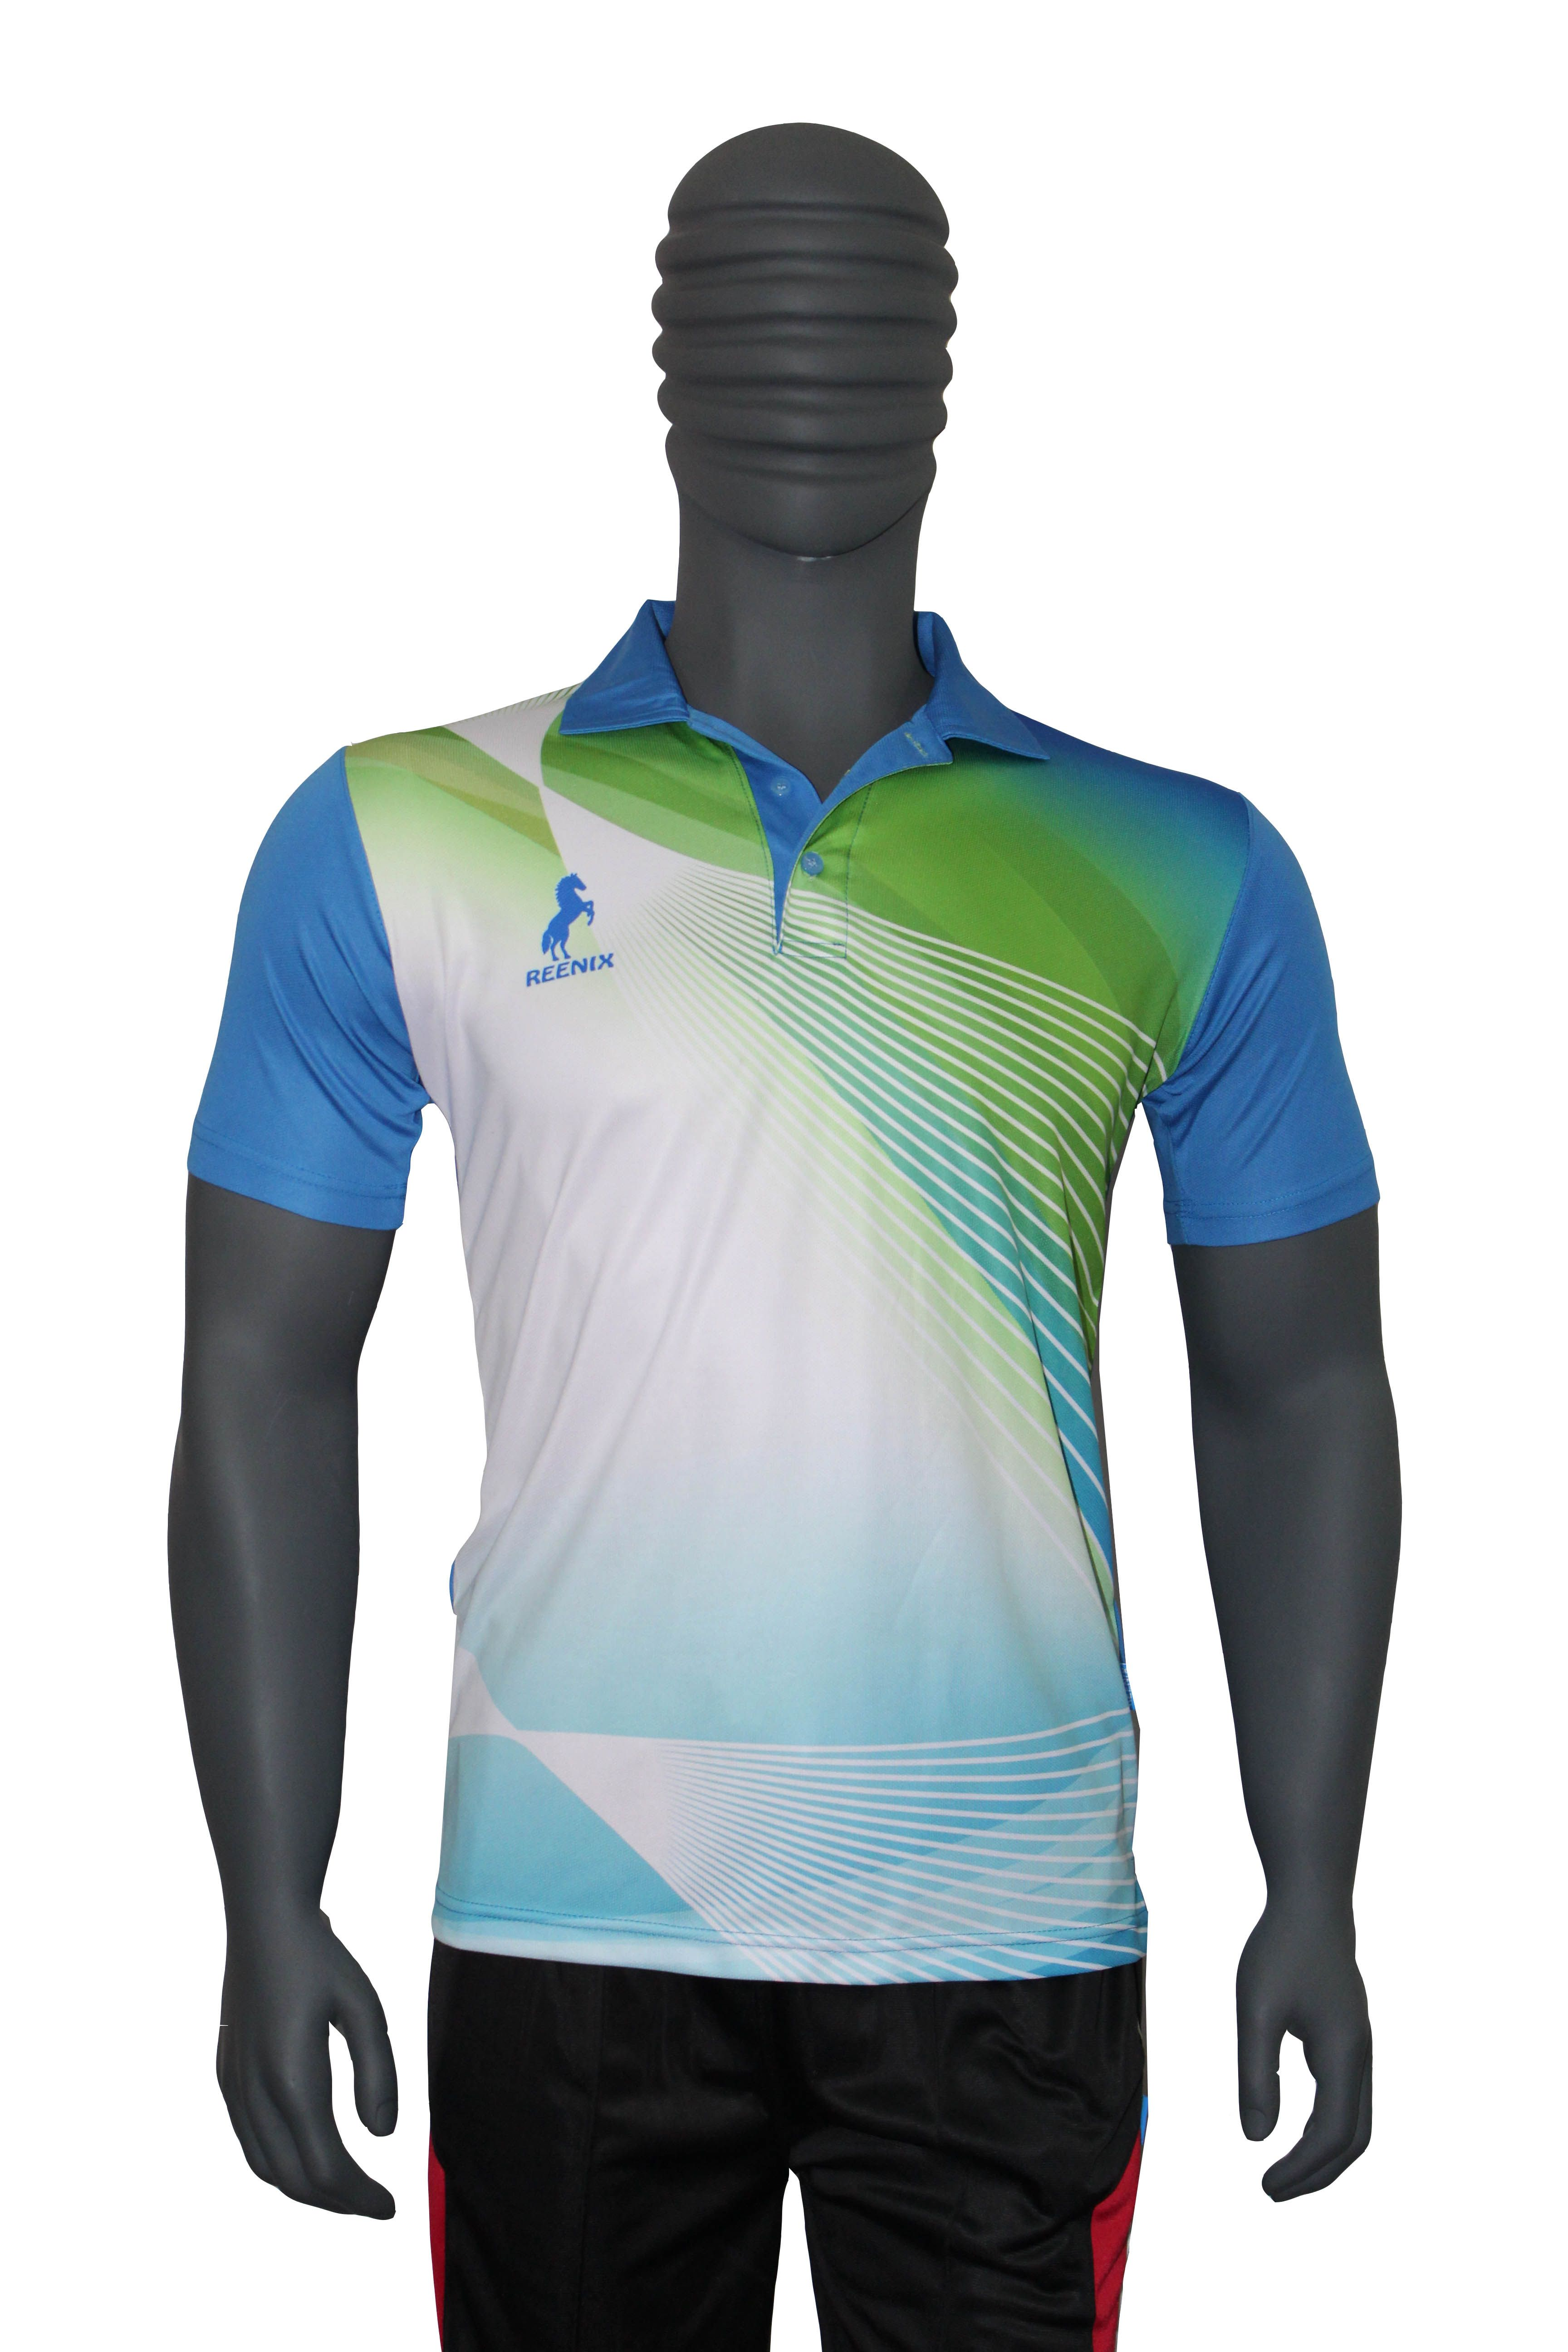 T Shirts Sublimation Printed Jersey Design Shirts Jersey